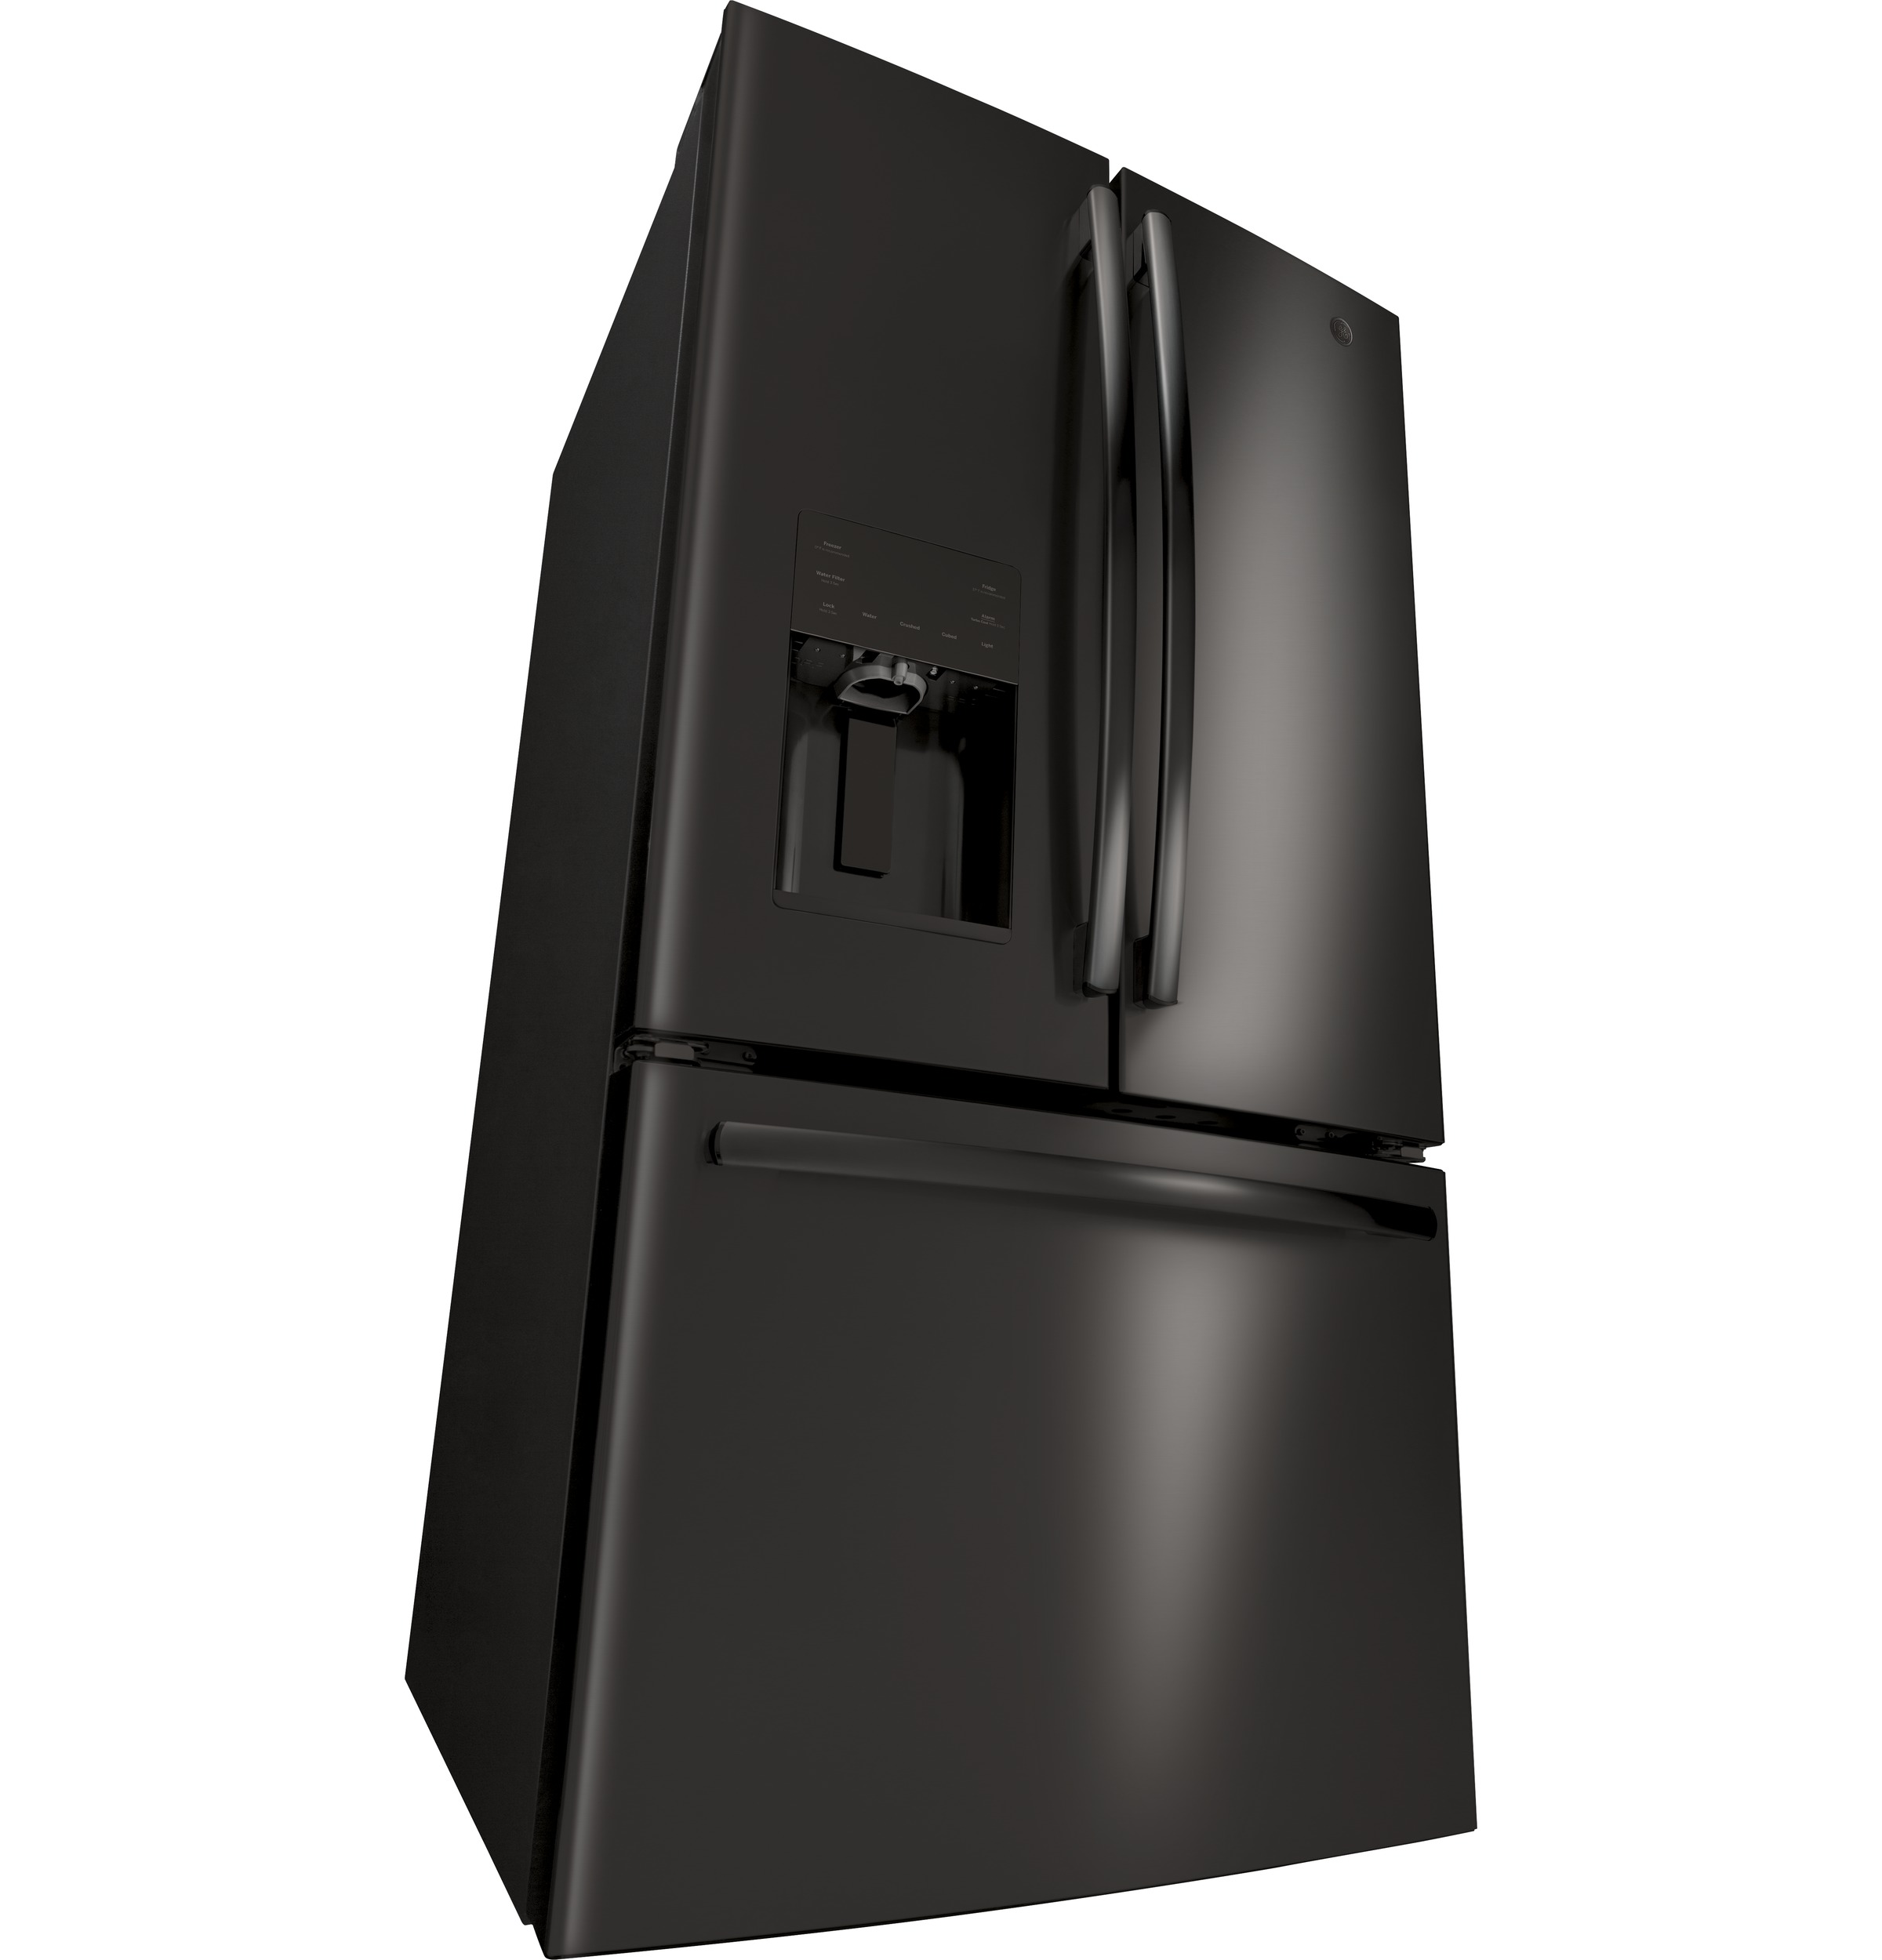 Model: GFE26JBMTS | GE GE® ENERGY STAR® 25.6 Cu. Ft. French-Door Refrigerator